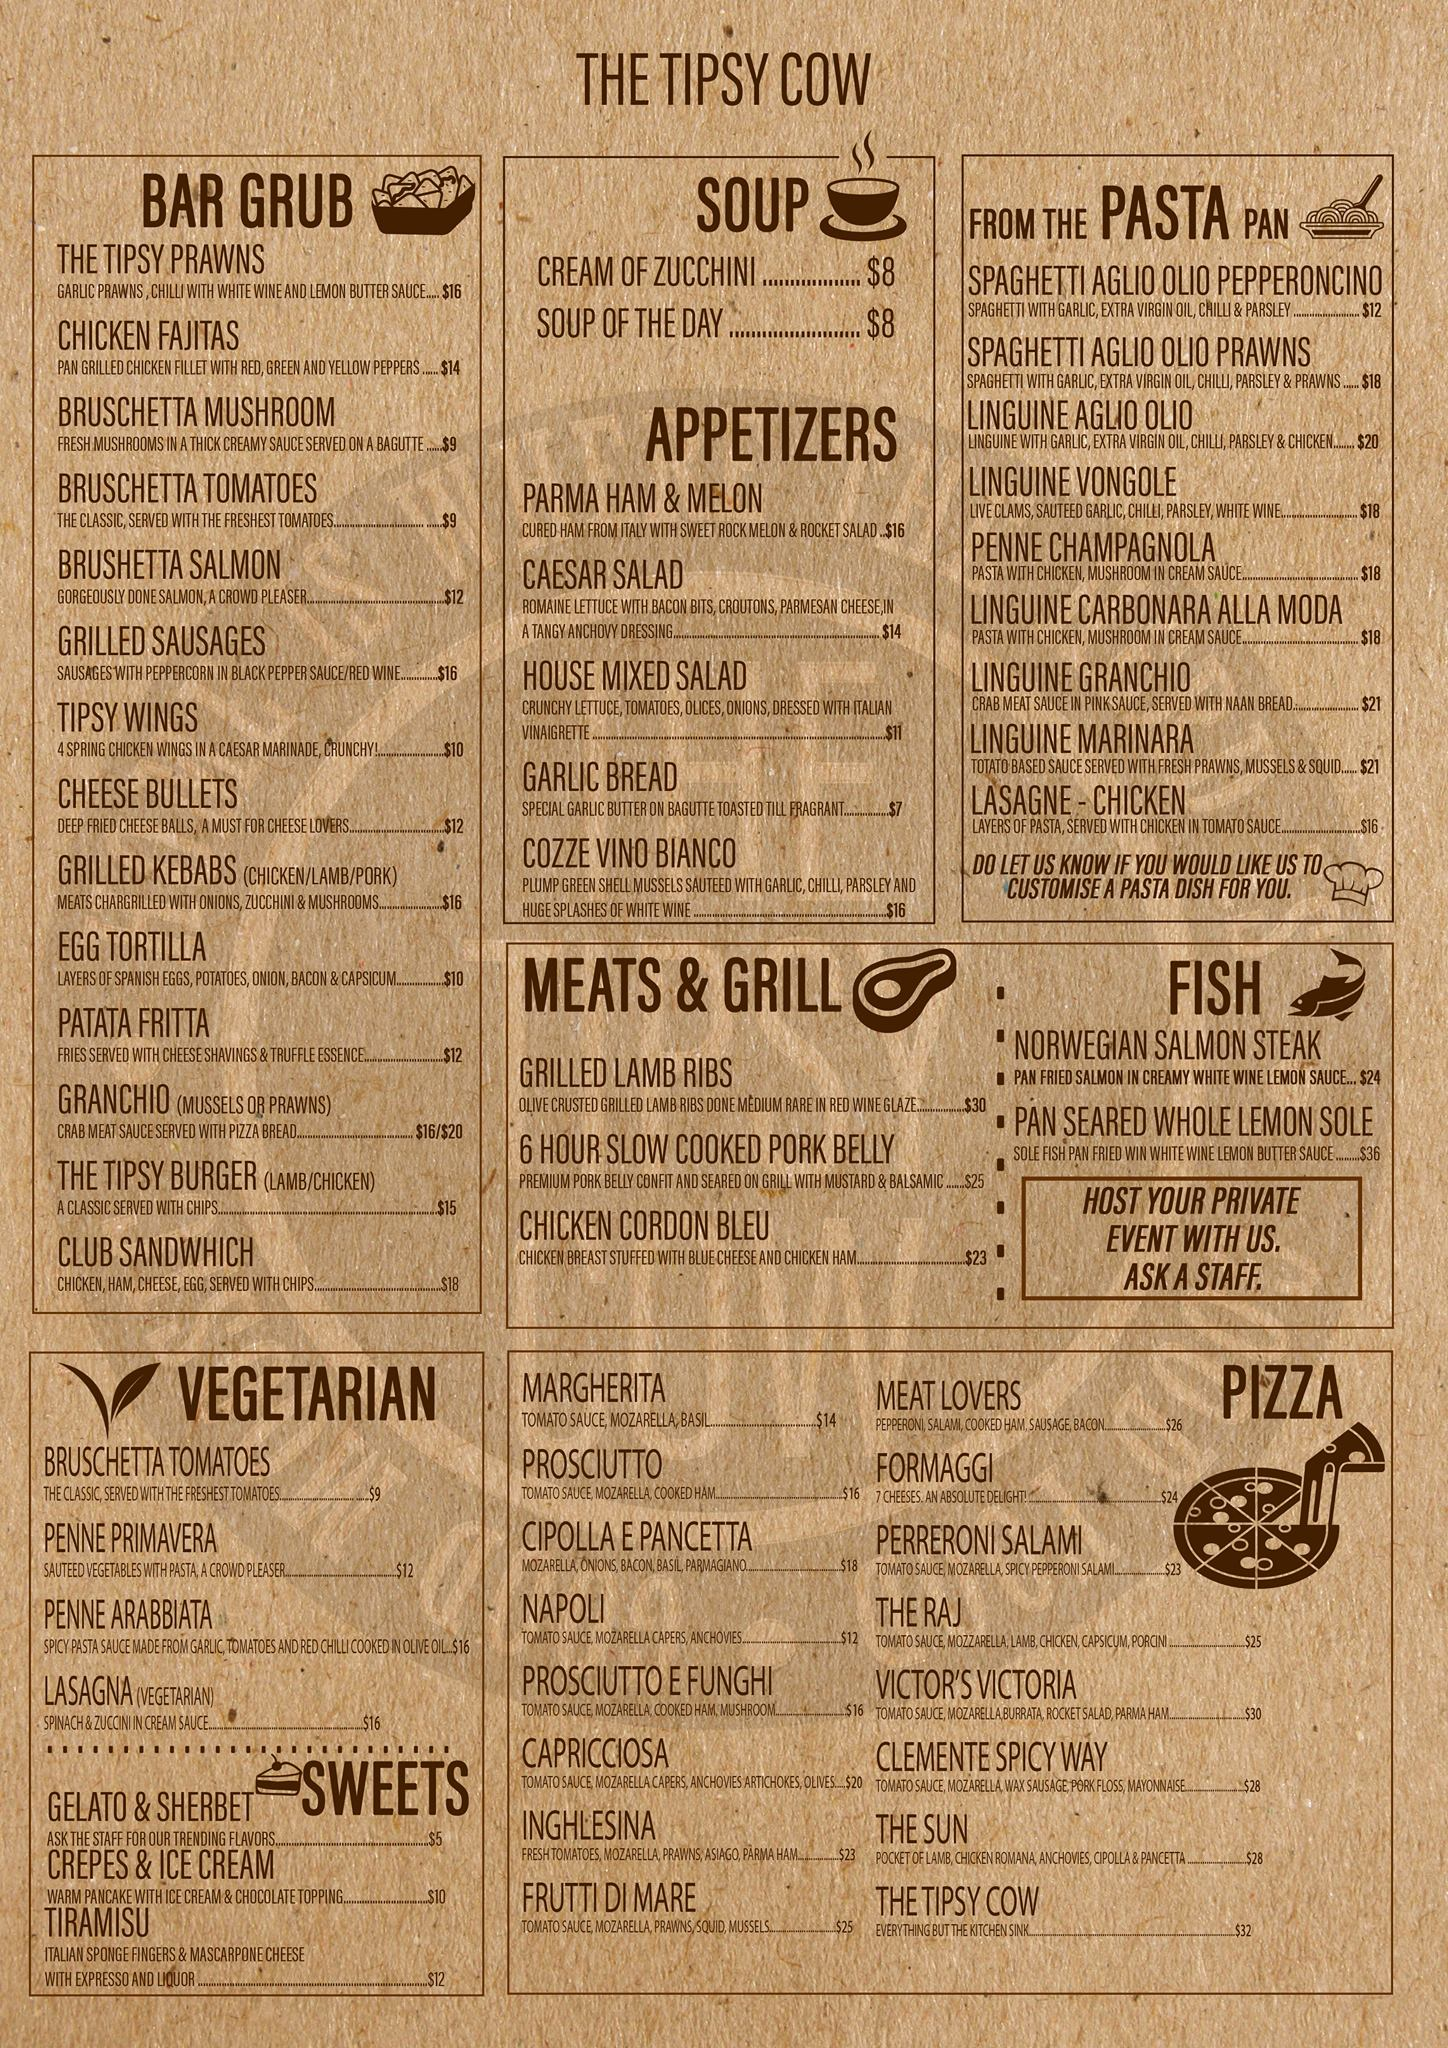 The Tipsy Cow - Food & Beverage Menu - TREAT